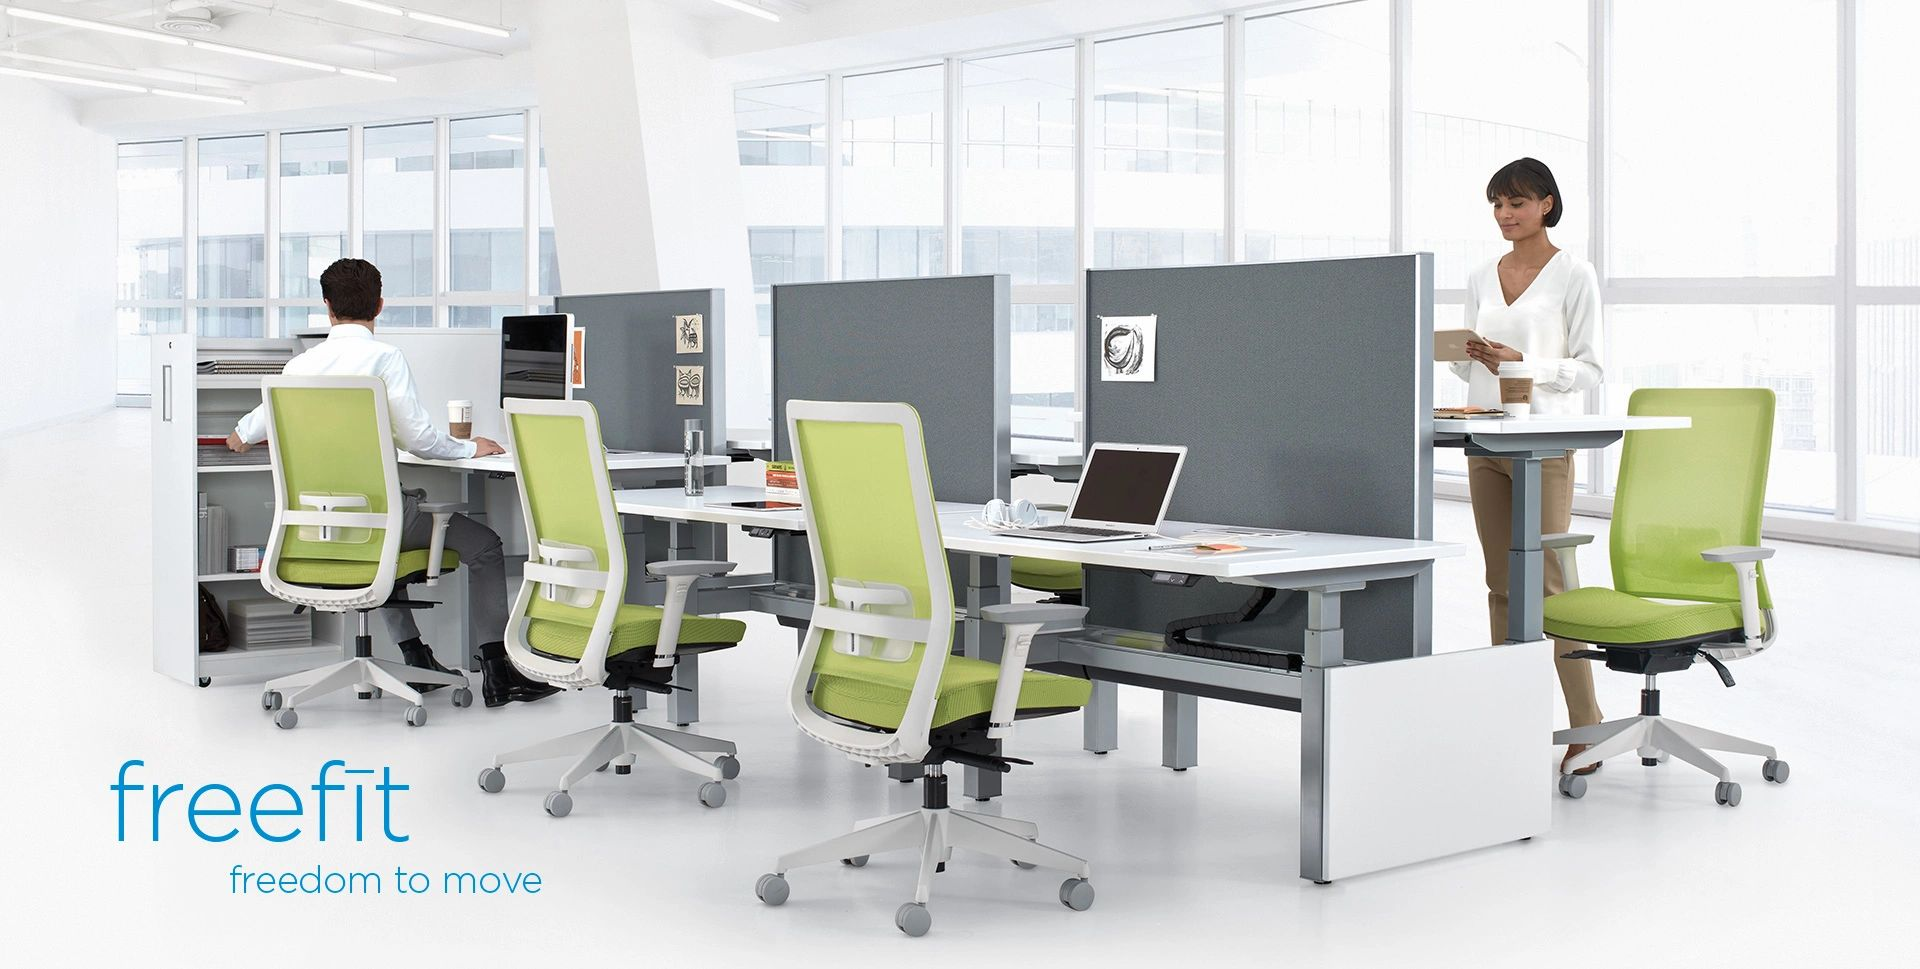 https://www.globalfurnituregroup.com/workplace/products/freefit#models-show-all